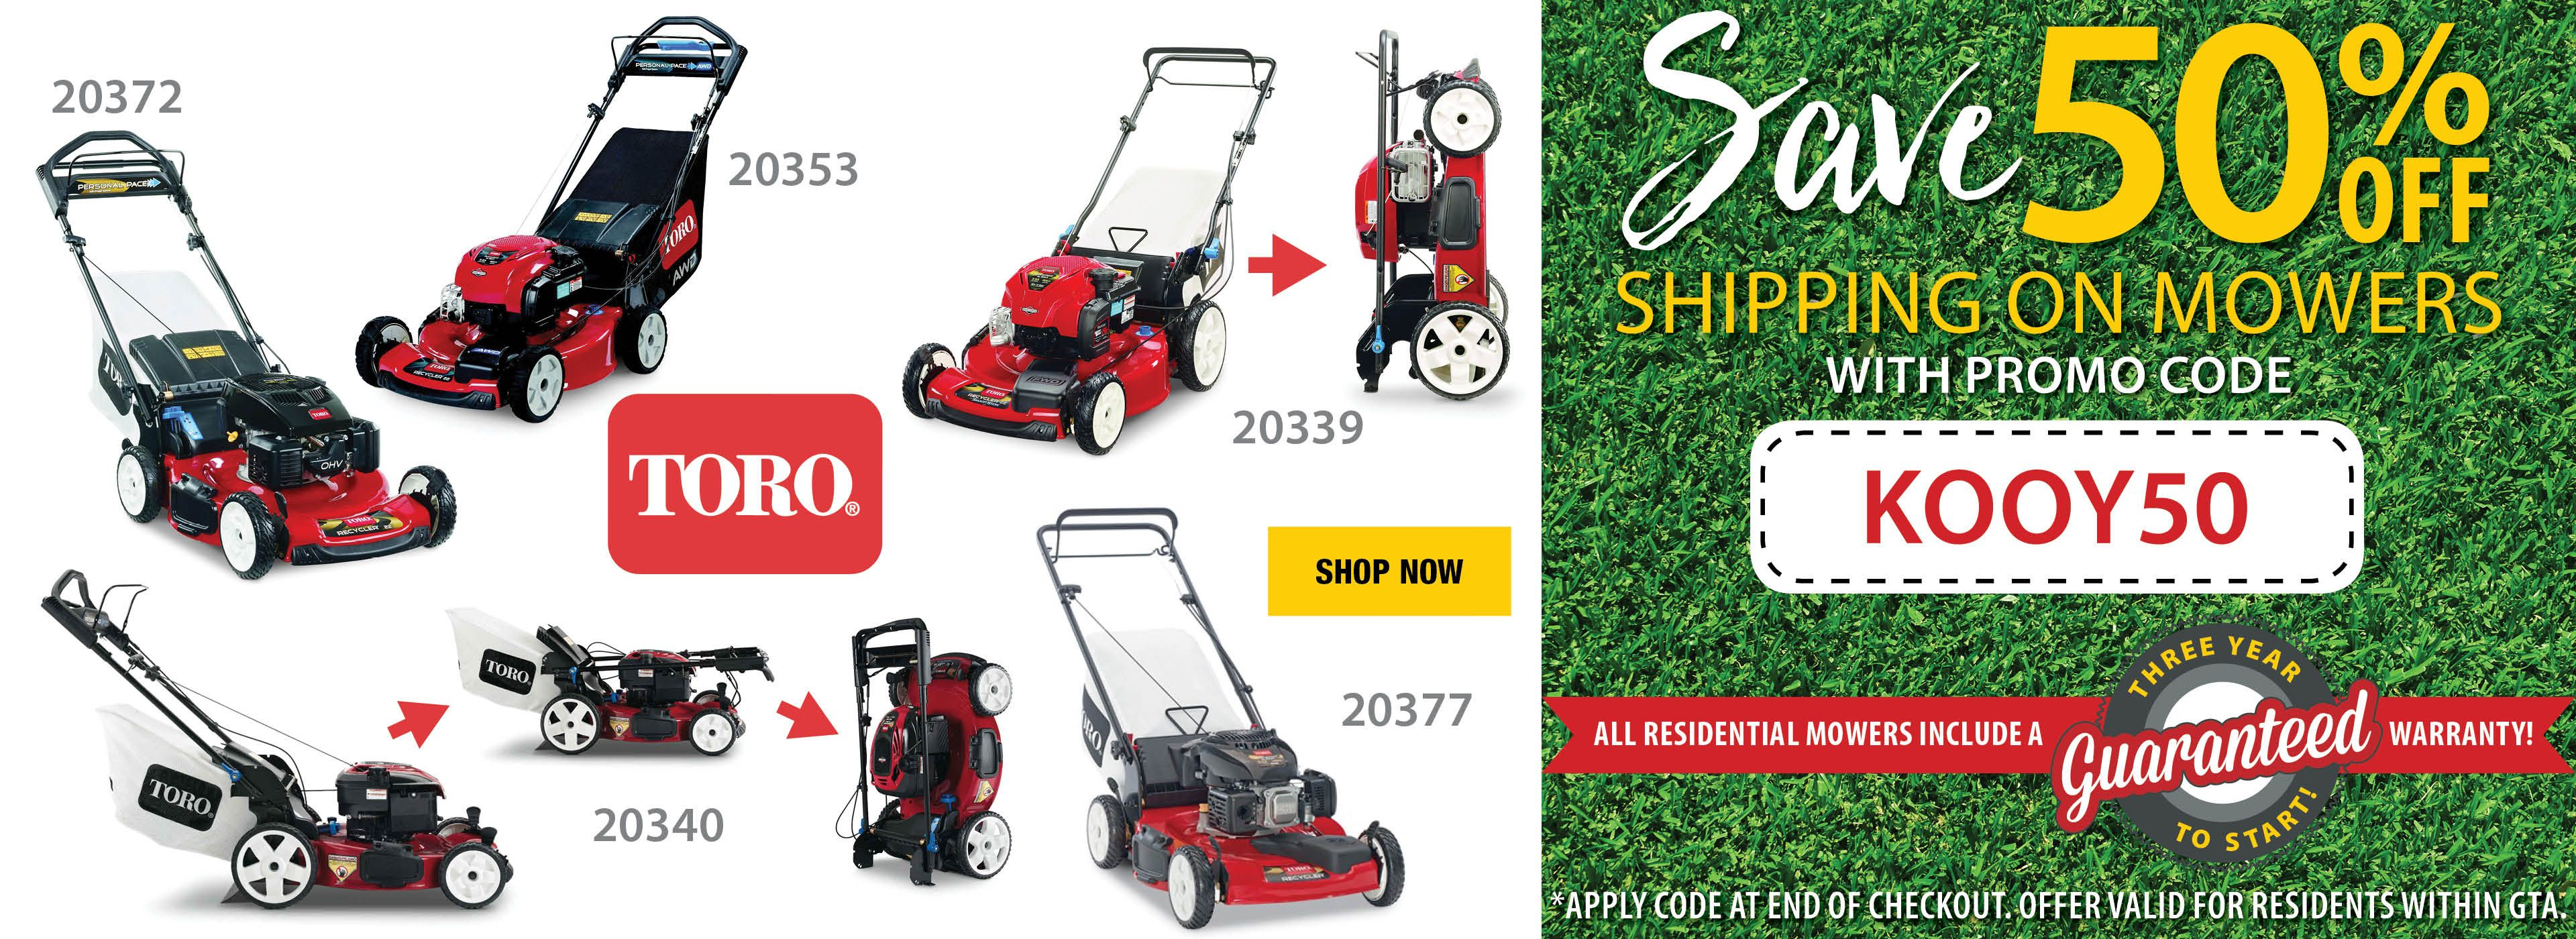 50% Off Shipping on lawnmowers with Promo Code within the GTA